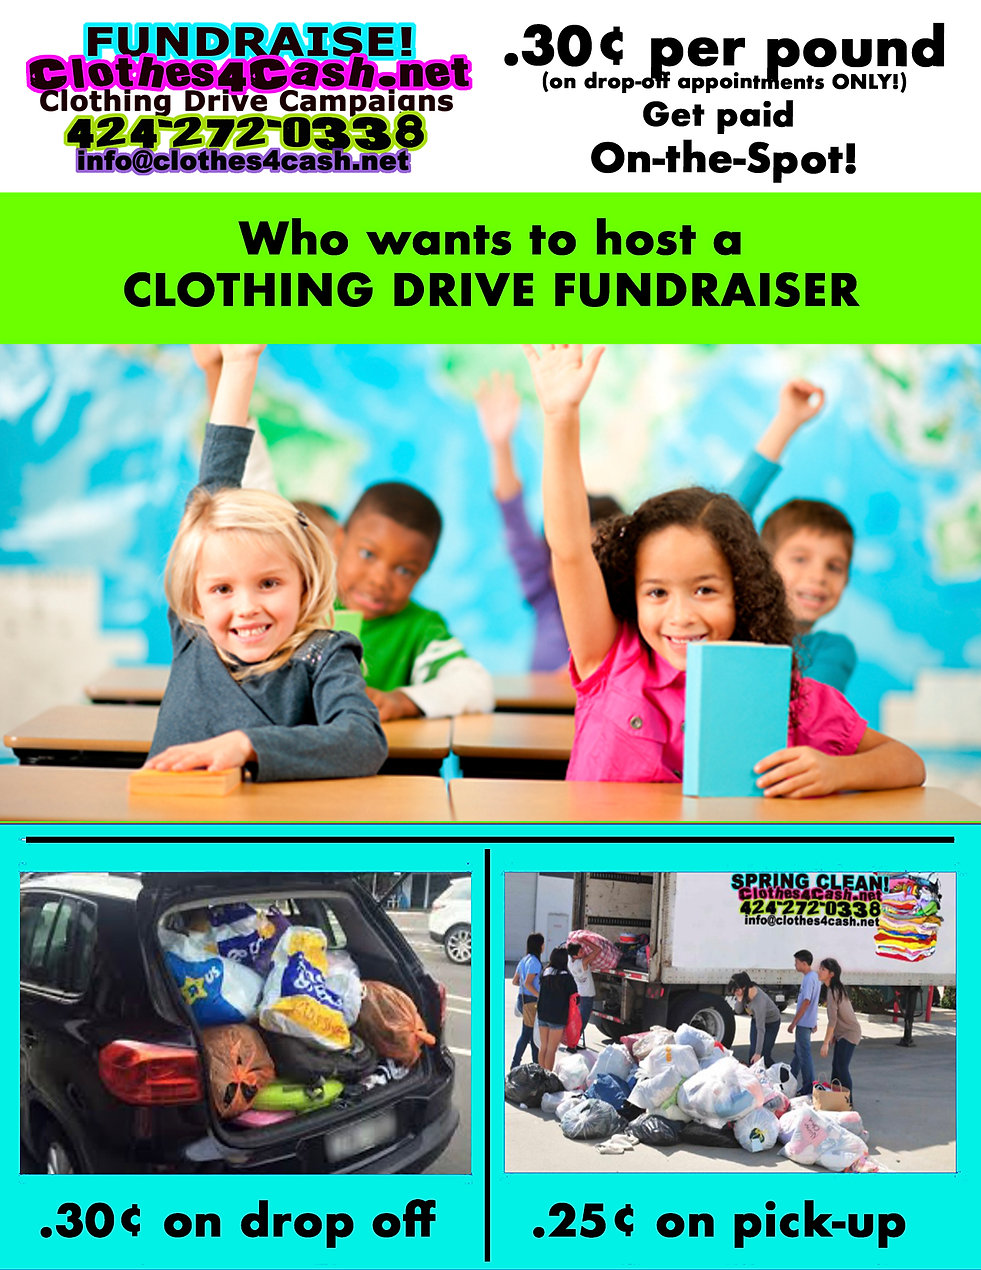 Fundraising Opportunity